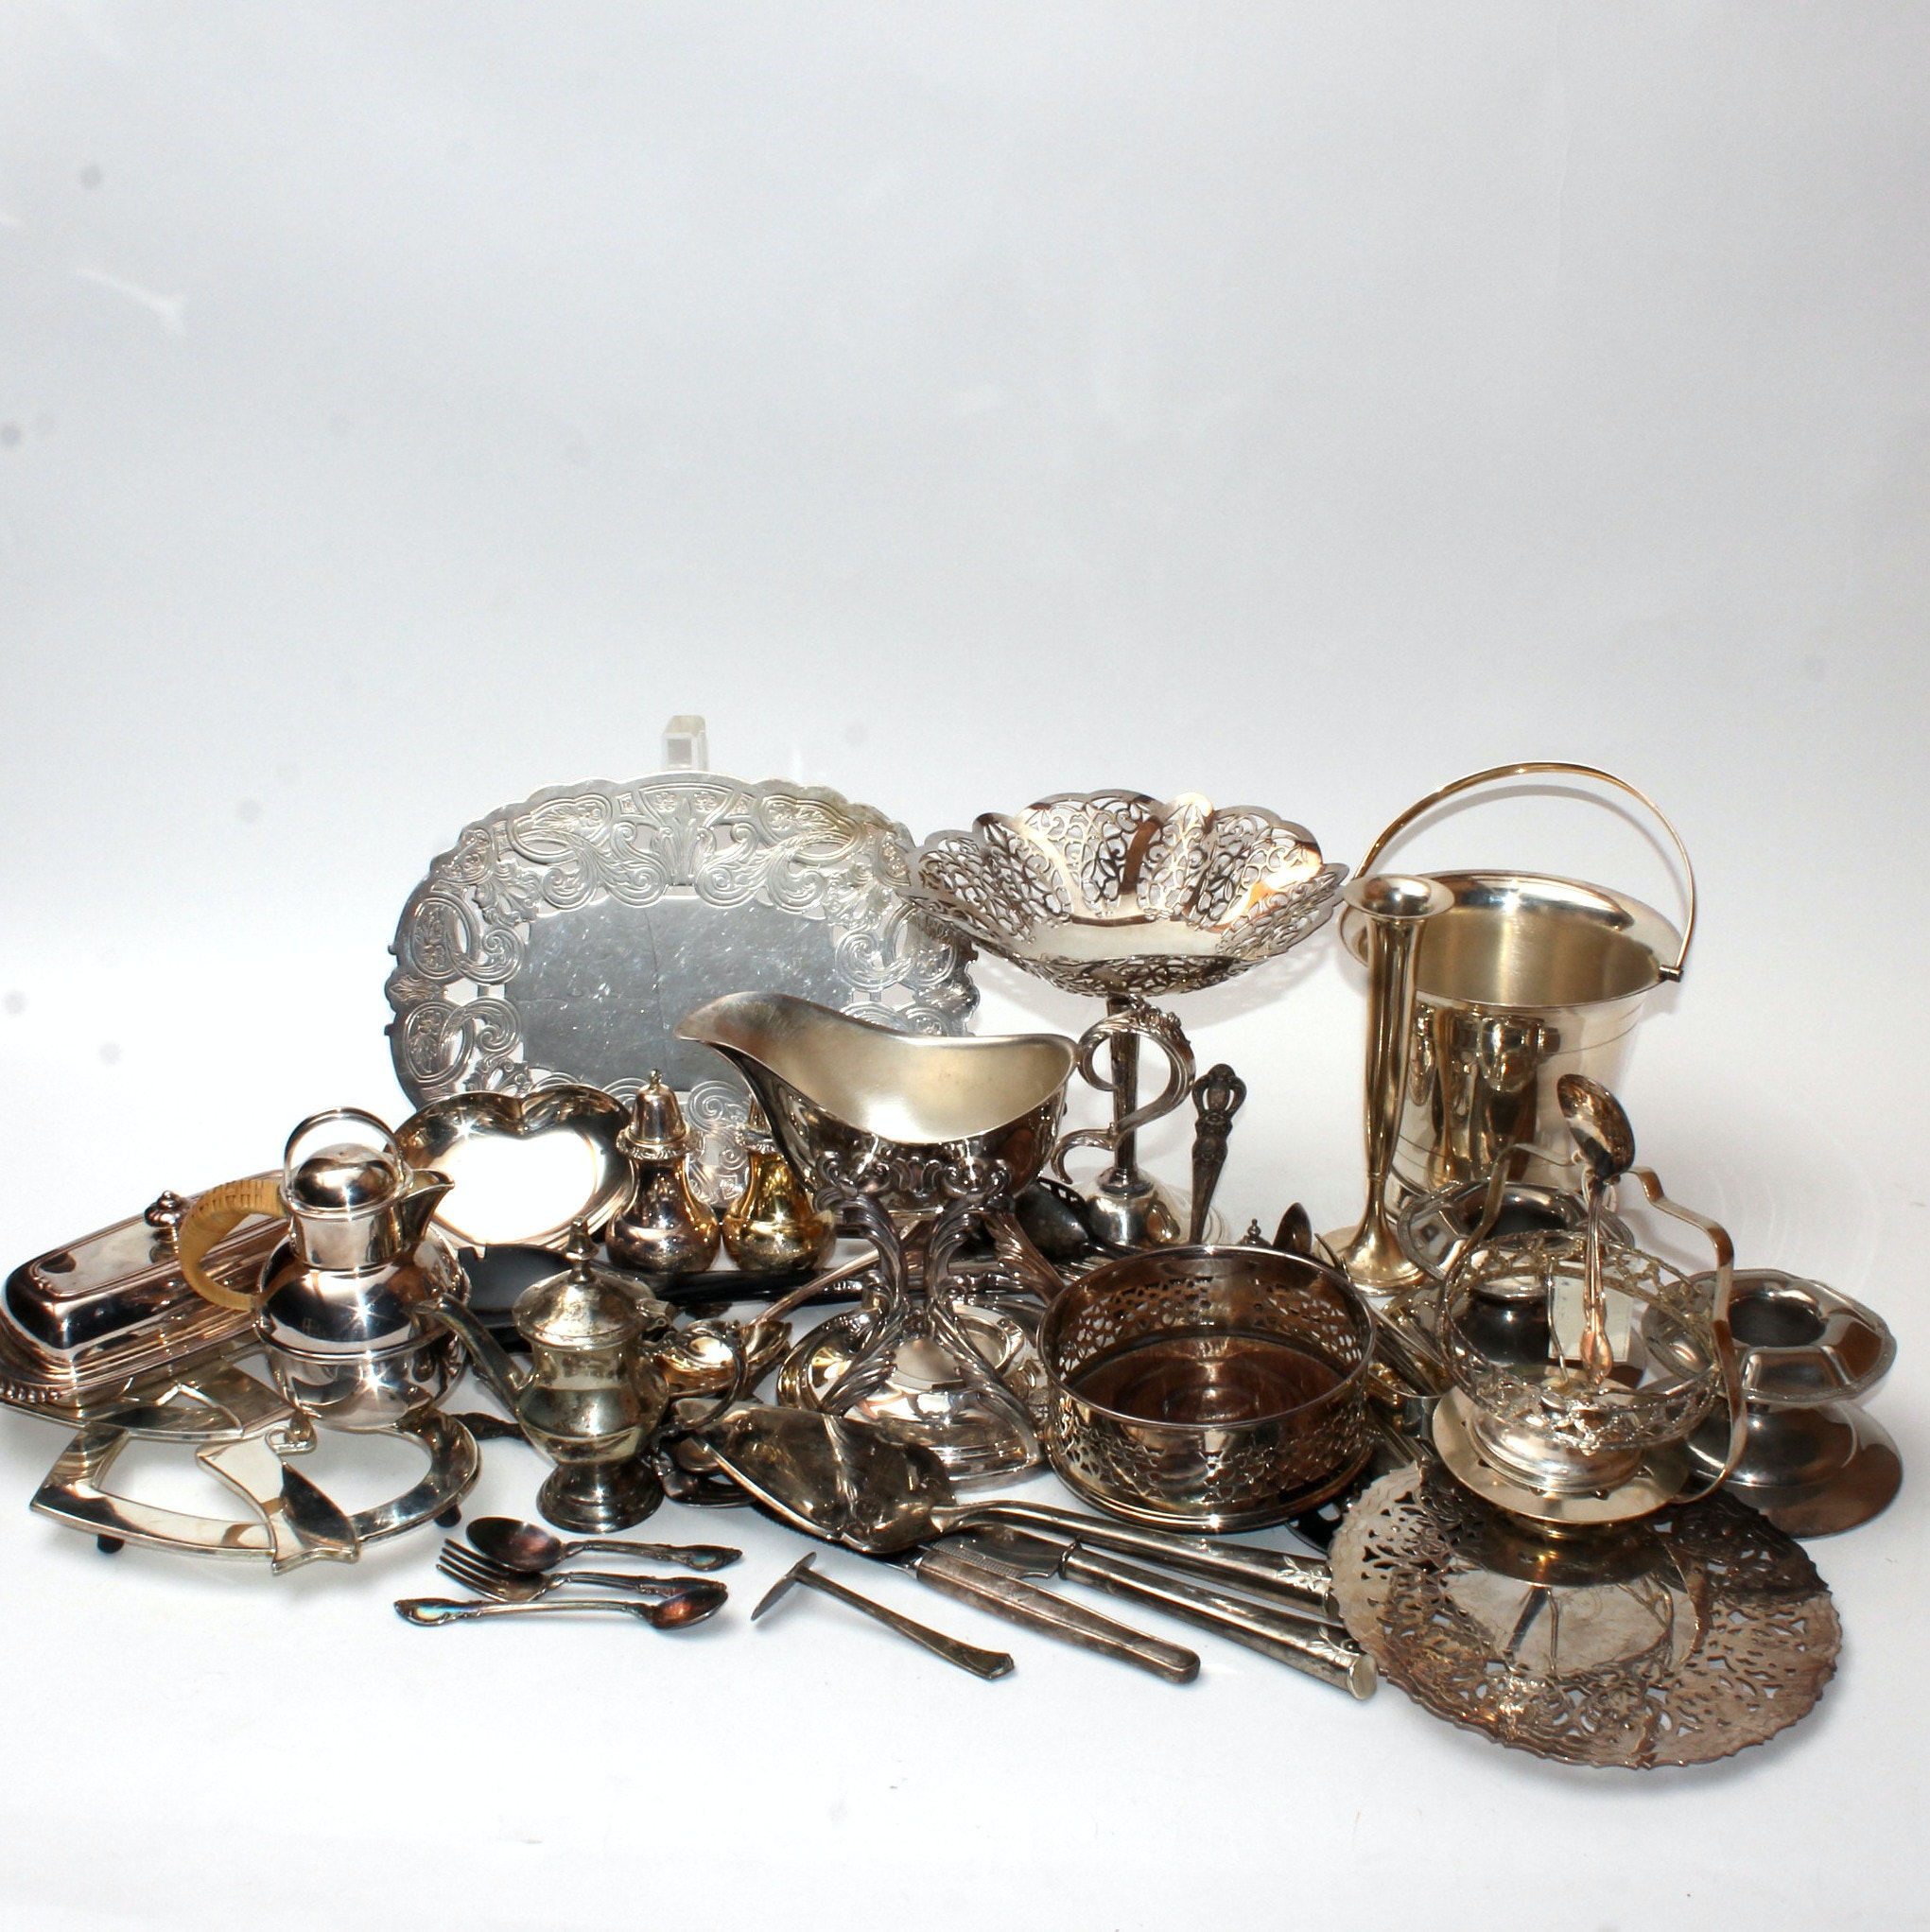 Silver Plate Flatware, Trivets, and More